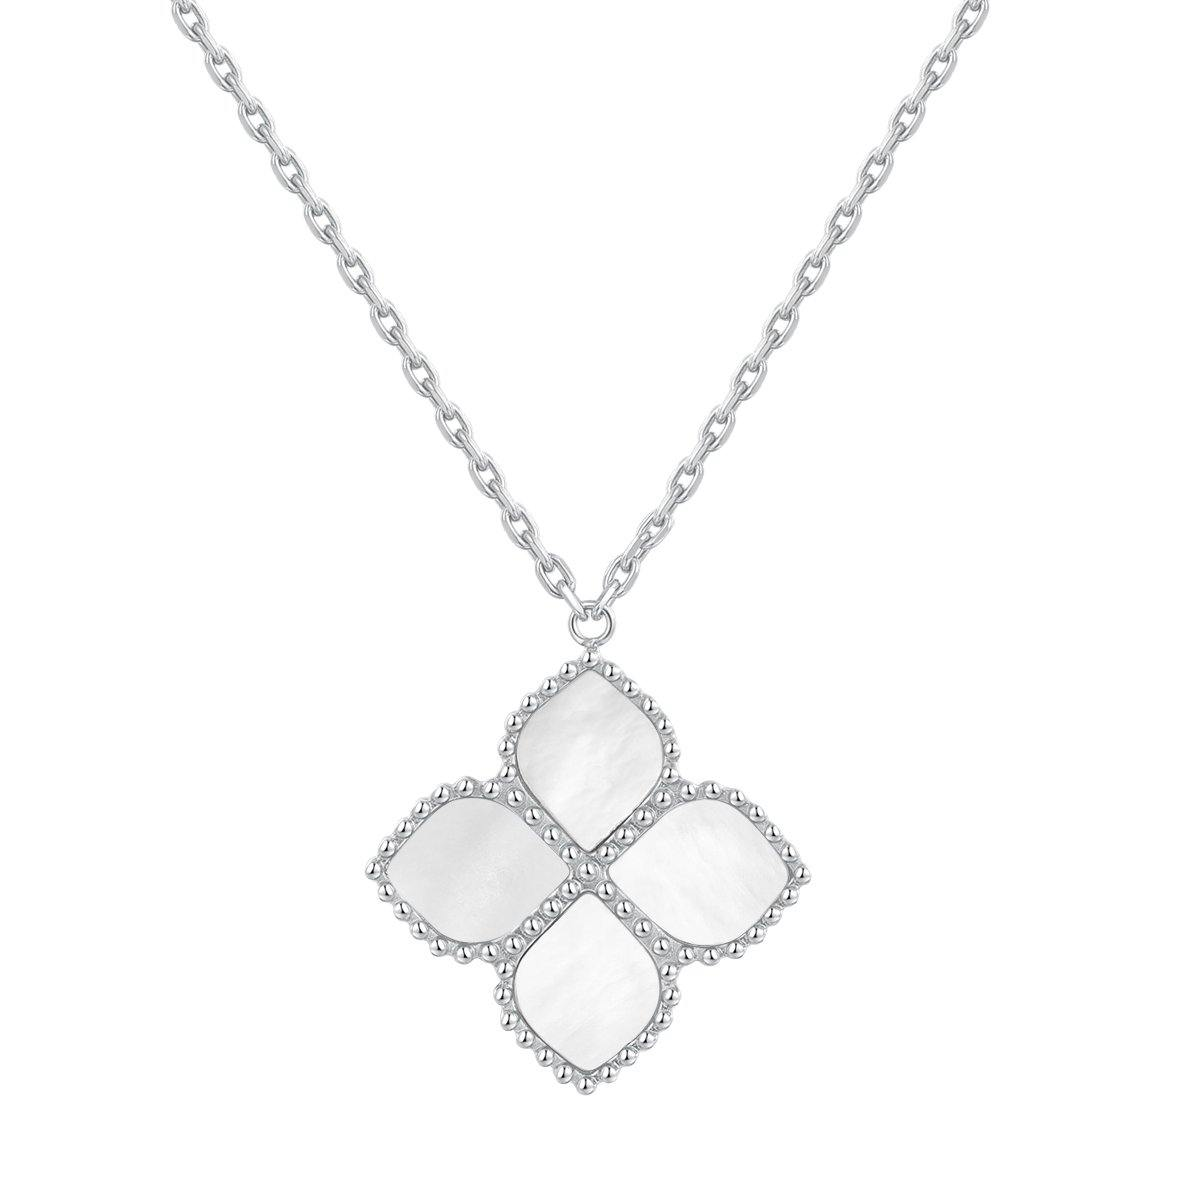 Joory / Necklace Pearl Silver - MINIMALIST